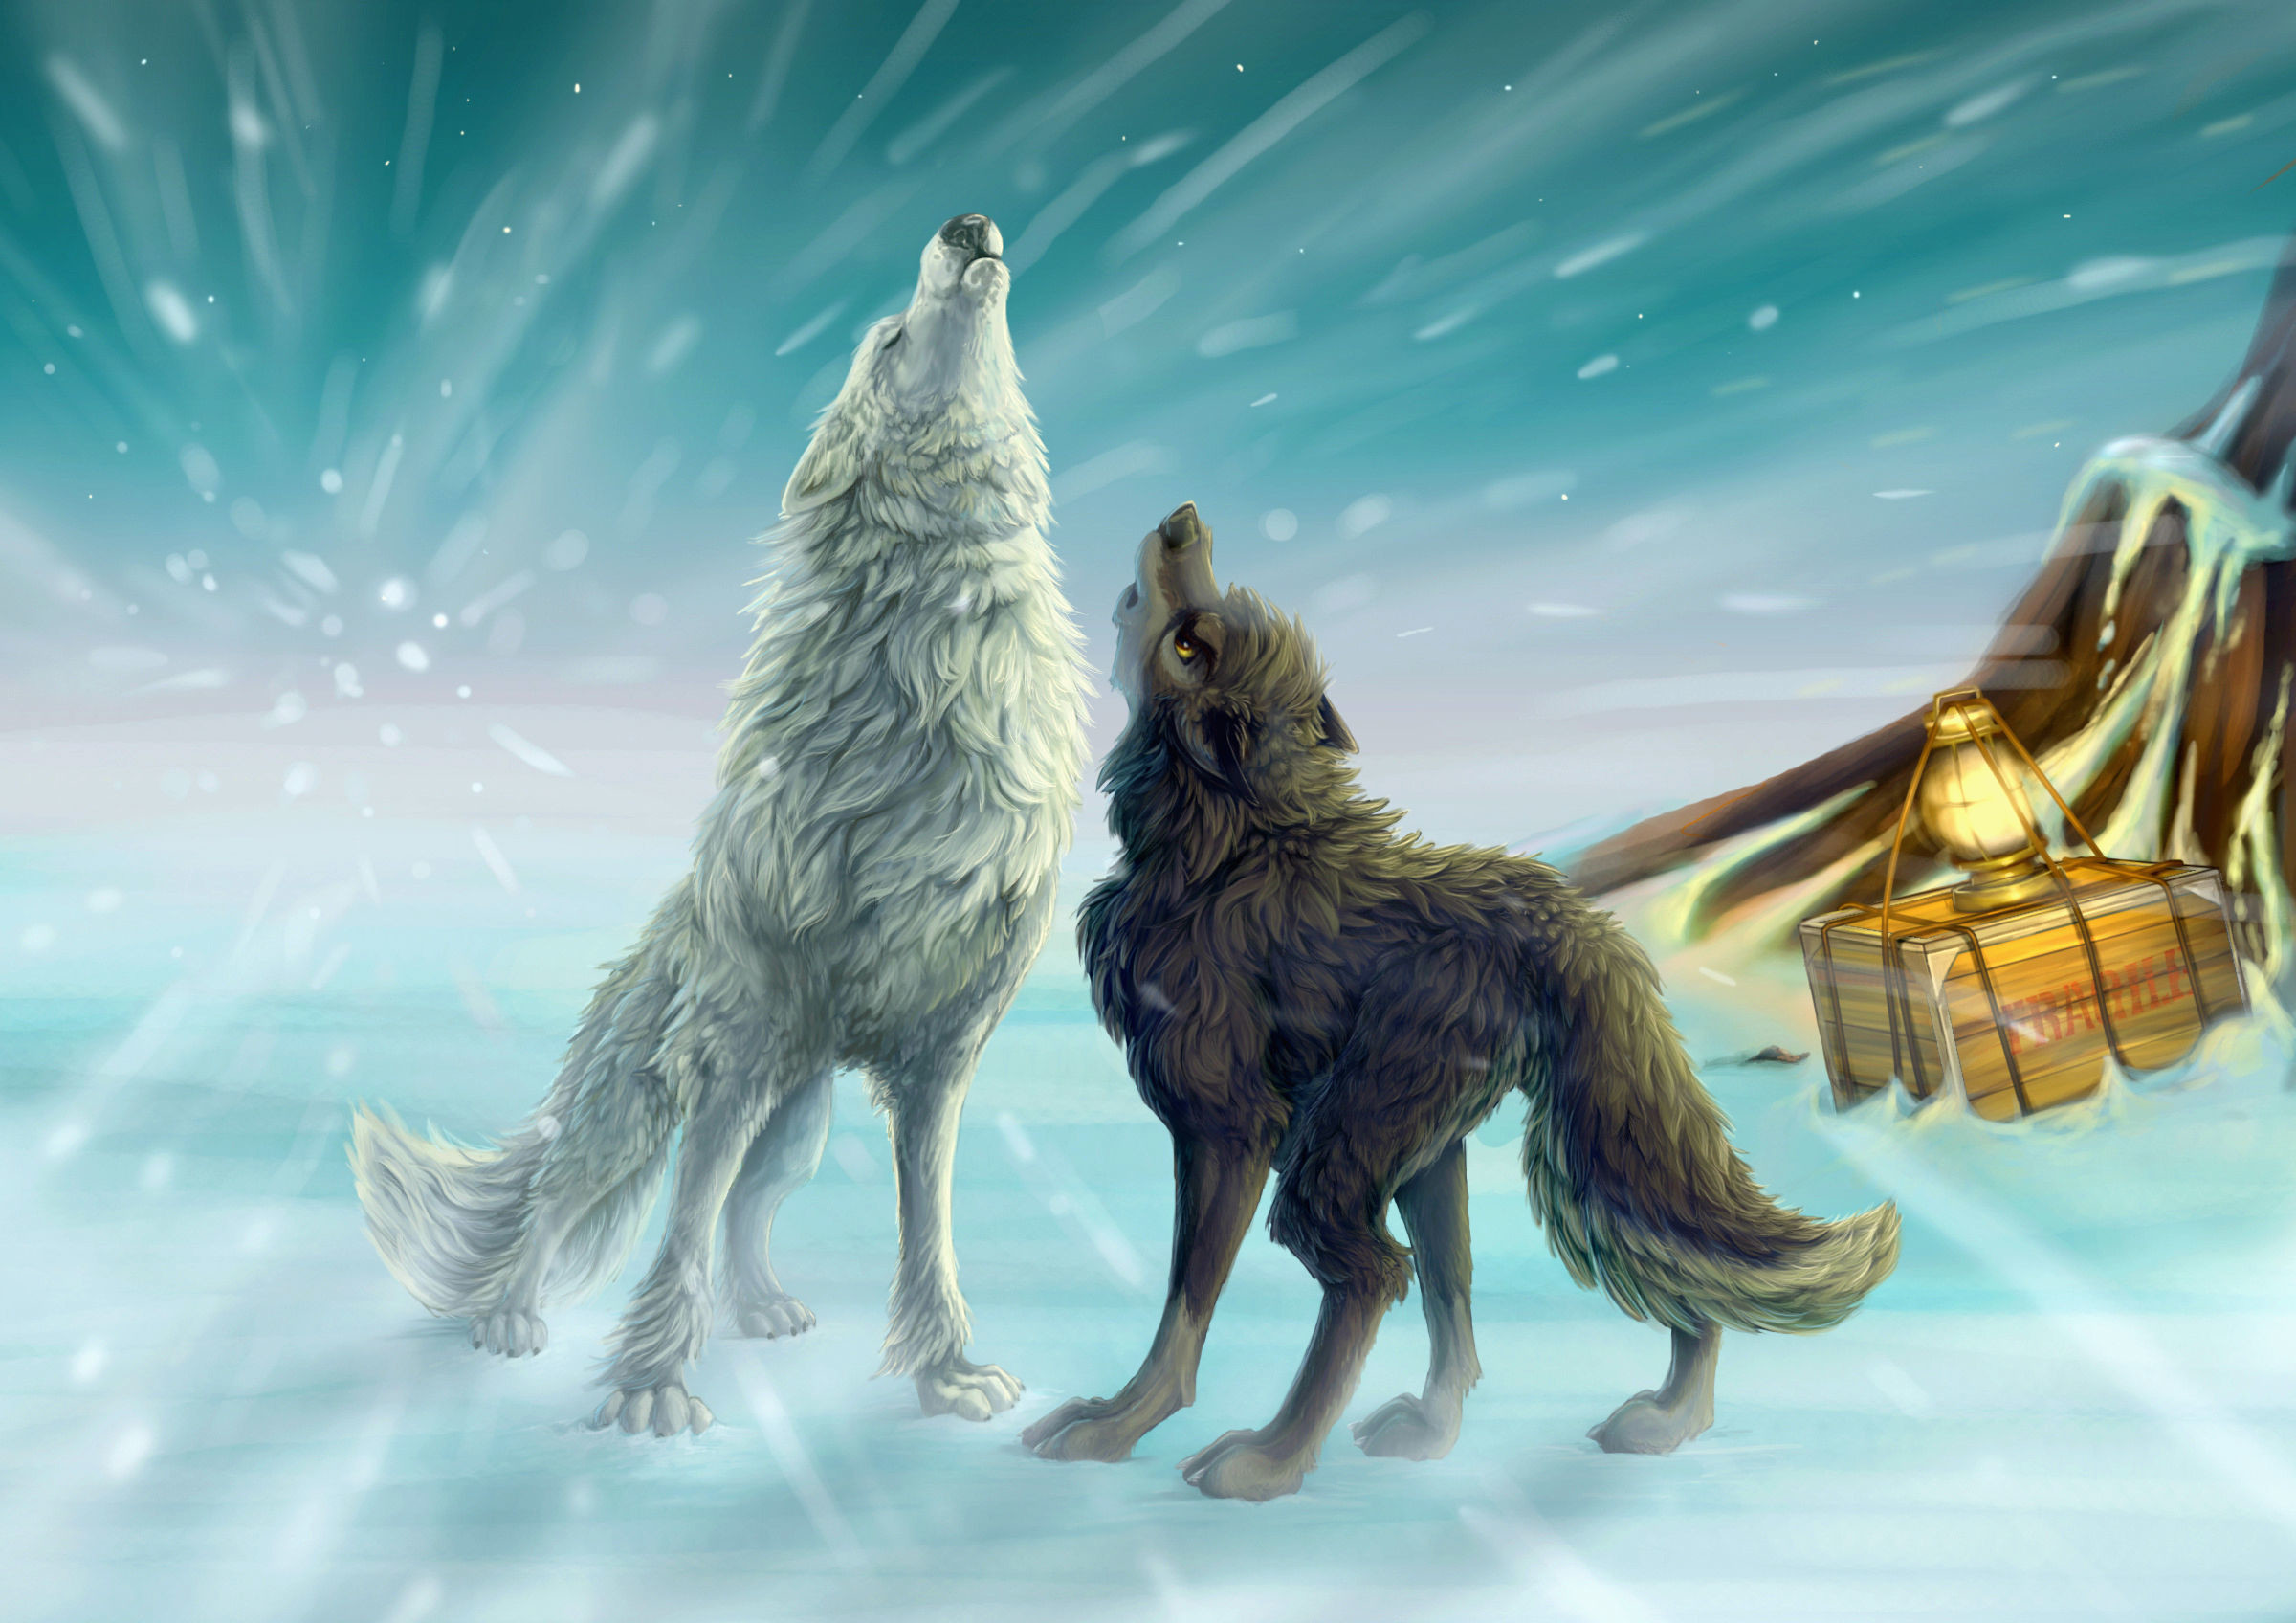 Res: 2400x1696,  anime wolf wallpapers desktop cool anime wolf pics desktop hd  anime .